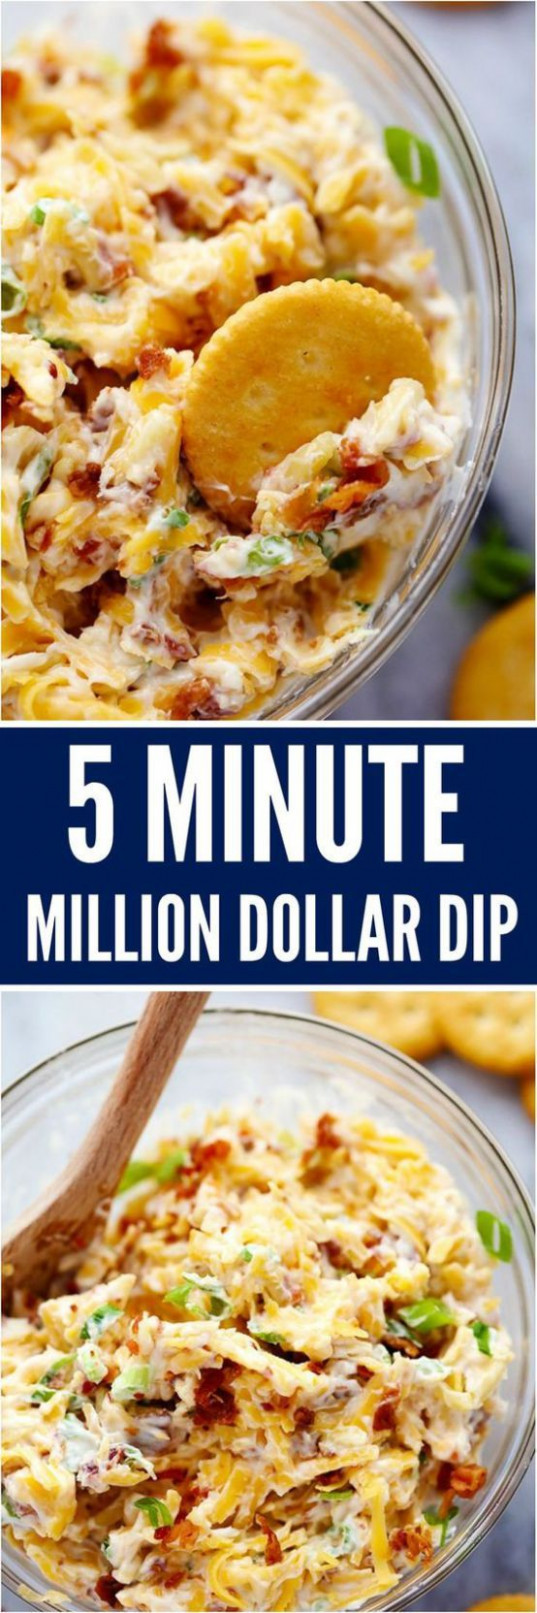 The 25+ Best Cold Finger Foods Ideas On Pinterest | Dip ..